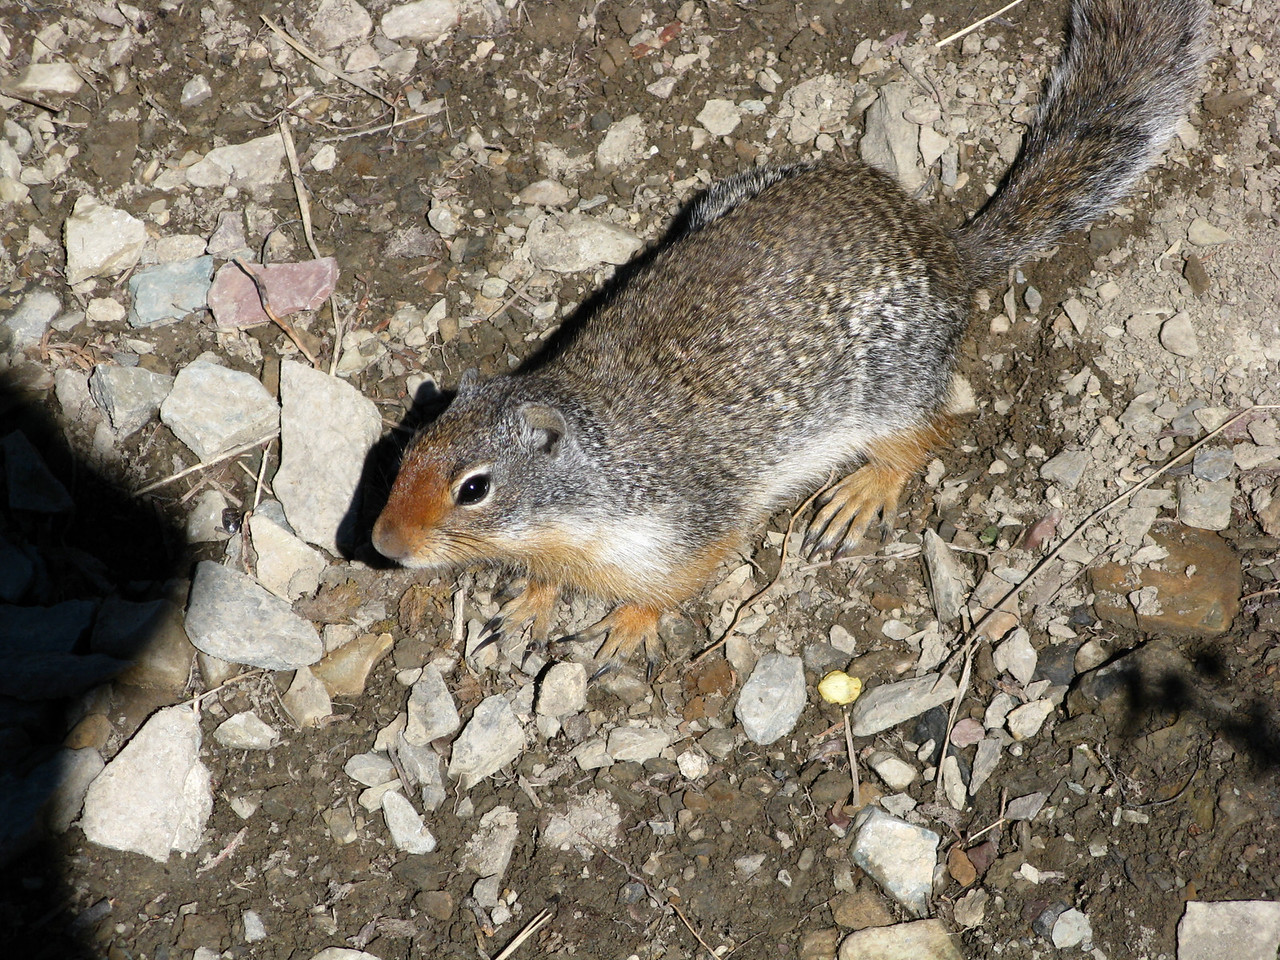 A ground squirrel on the trail.